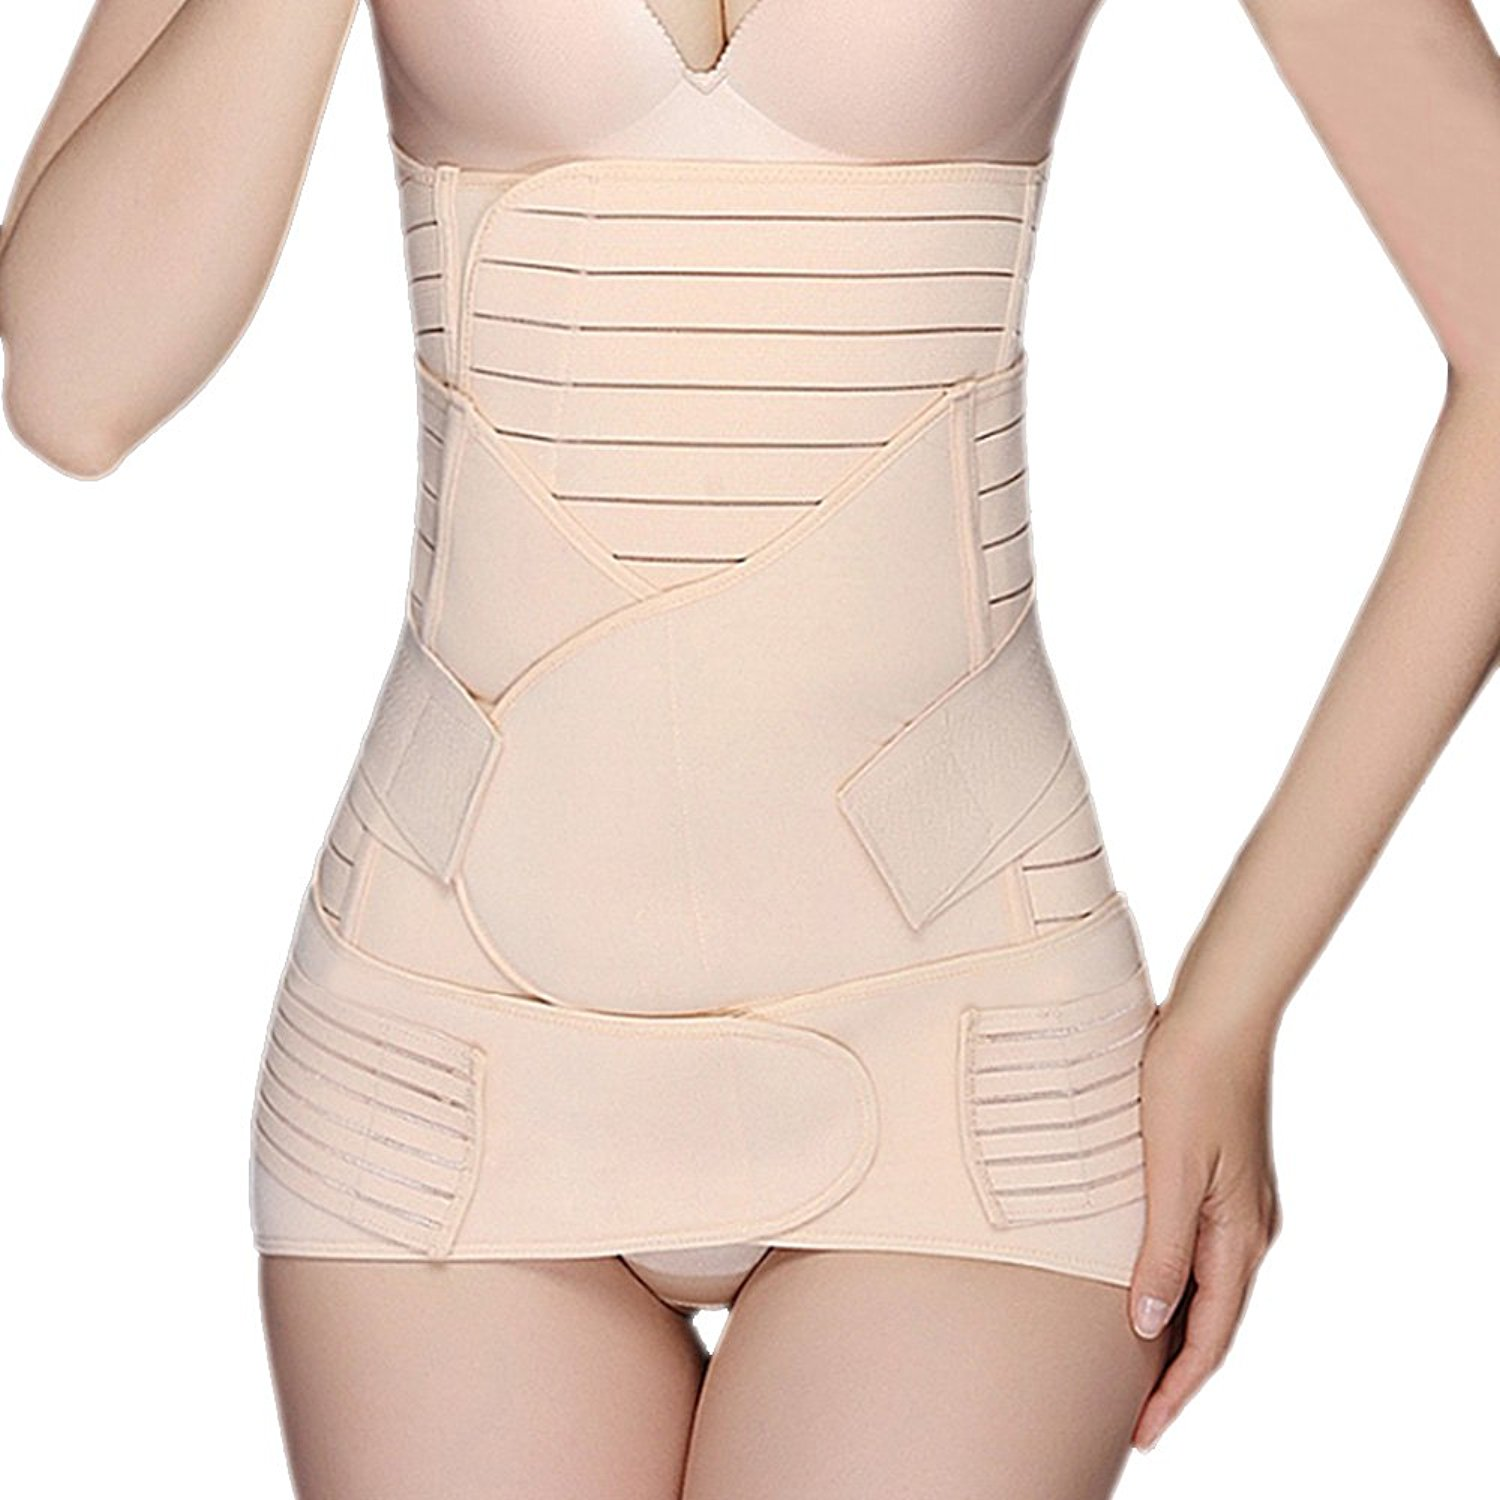 c637725386f Get Quotations · Shusuo 3-In-1 Postpartum Support Girdle Belt C-Section  Recovery Belly Shapewear